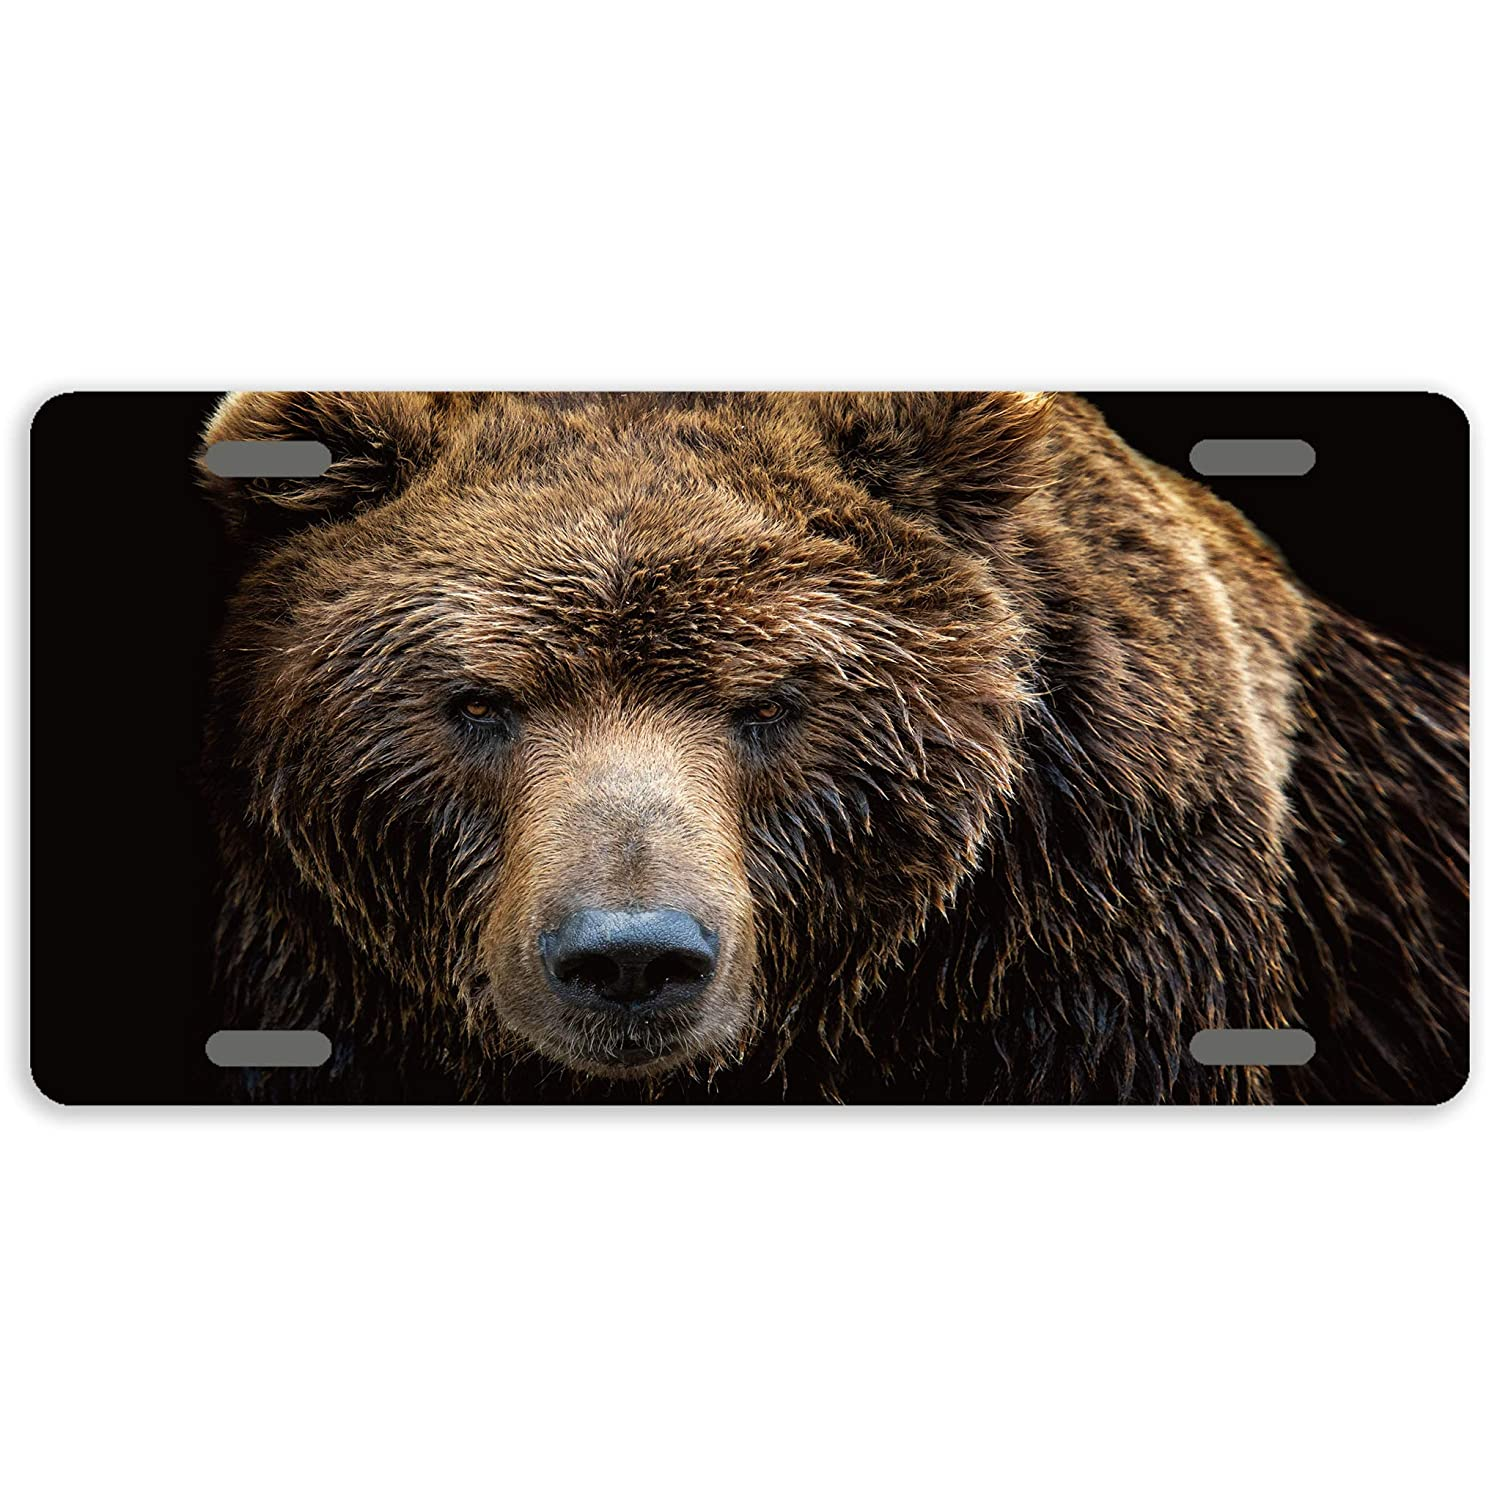 TrunyArt Plate Brown Bear License Plate Covers for Cars Aluminum Tag Sign Decorative Auto Tag Novelty Front License Plate 4 Hole 12 x 6